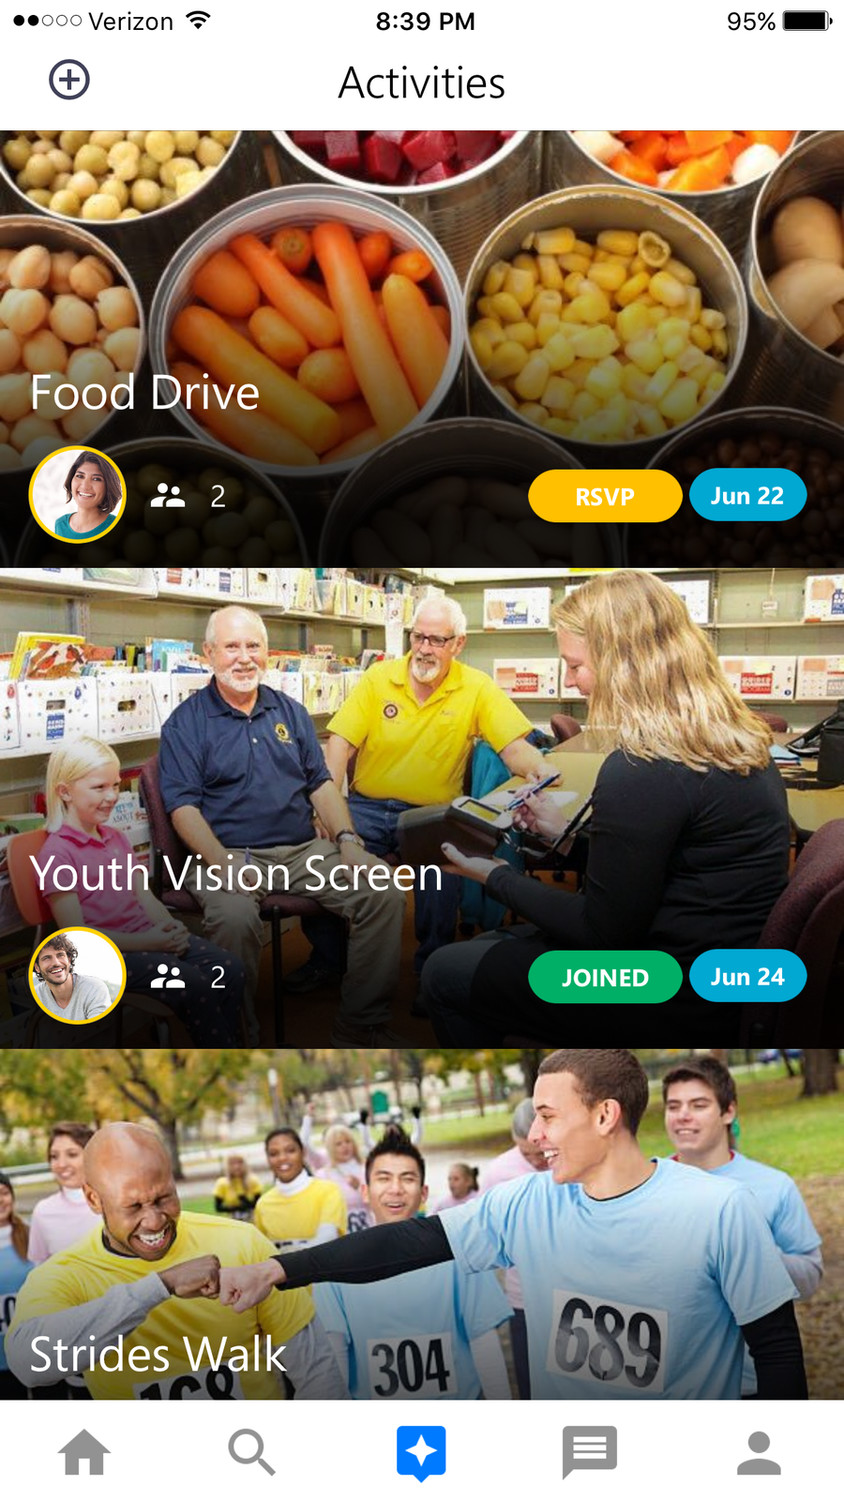 MyLion App Helps Communities Thrive 1tags%